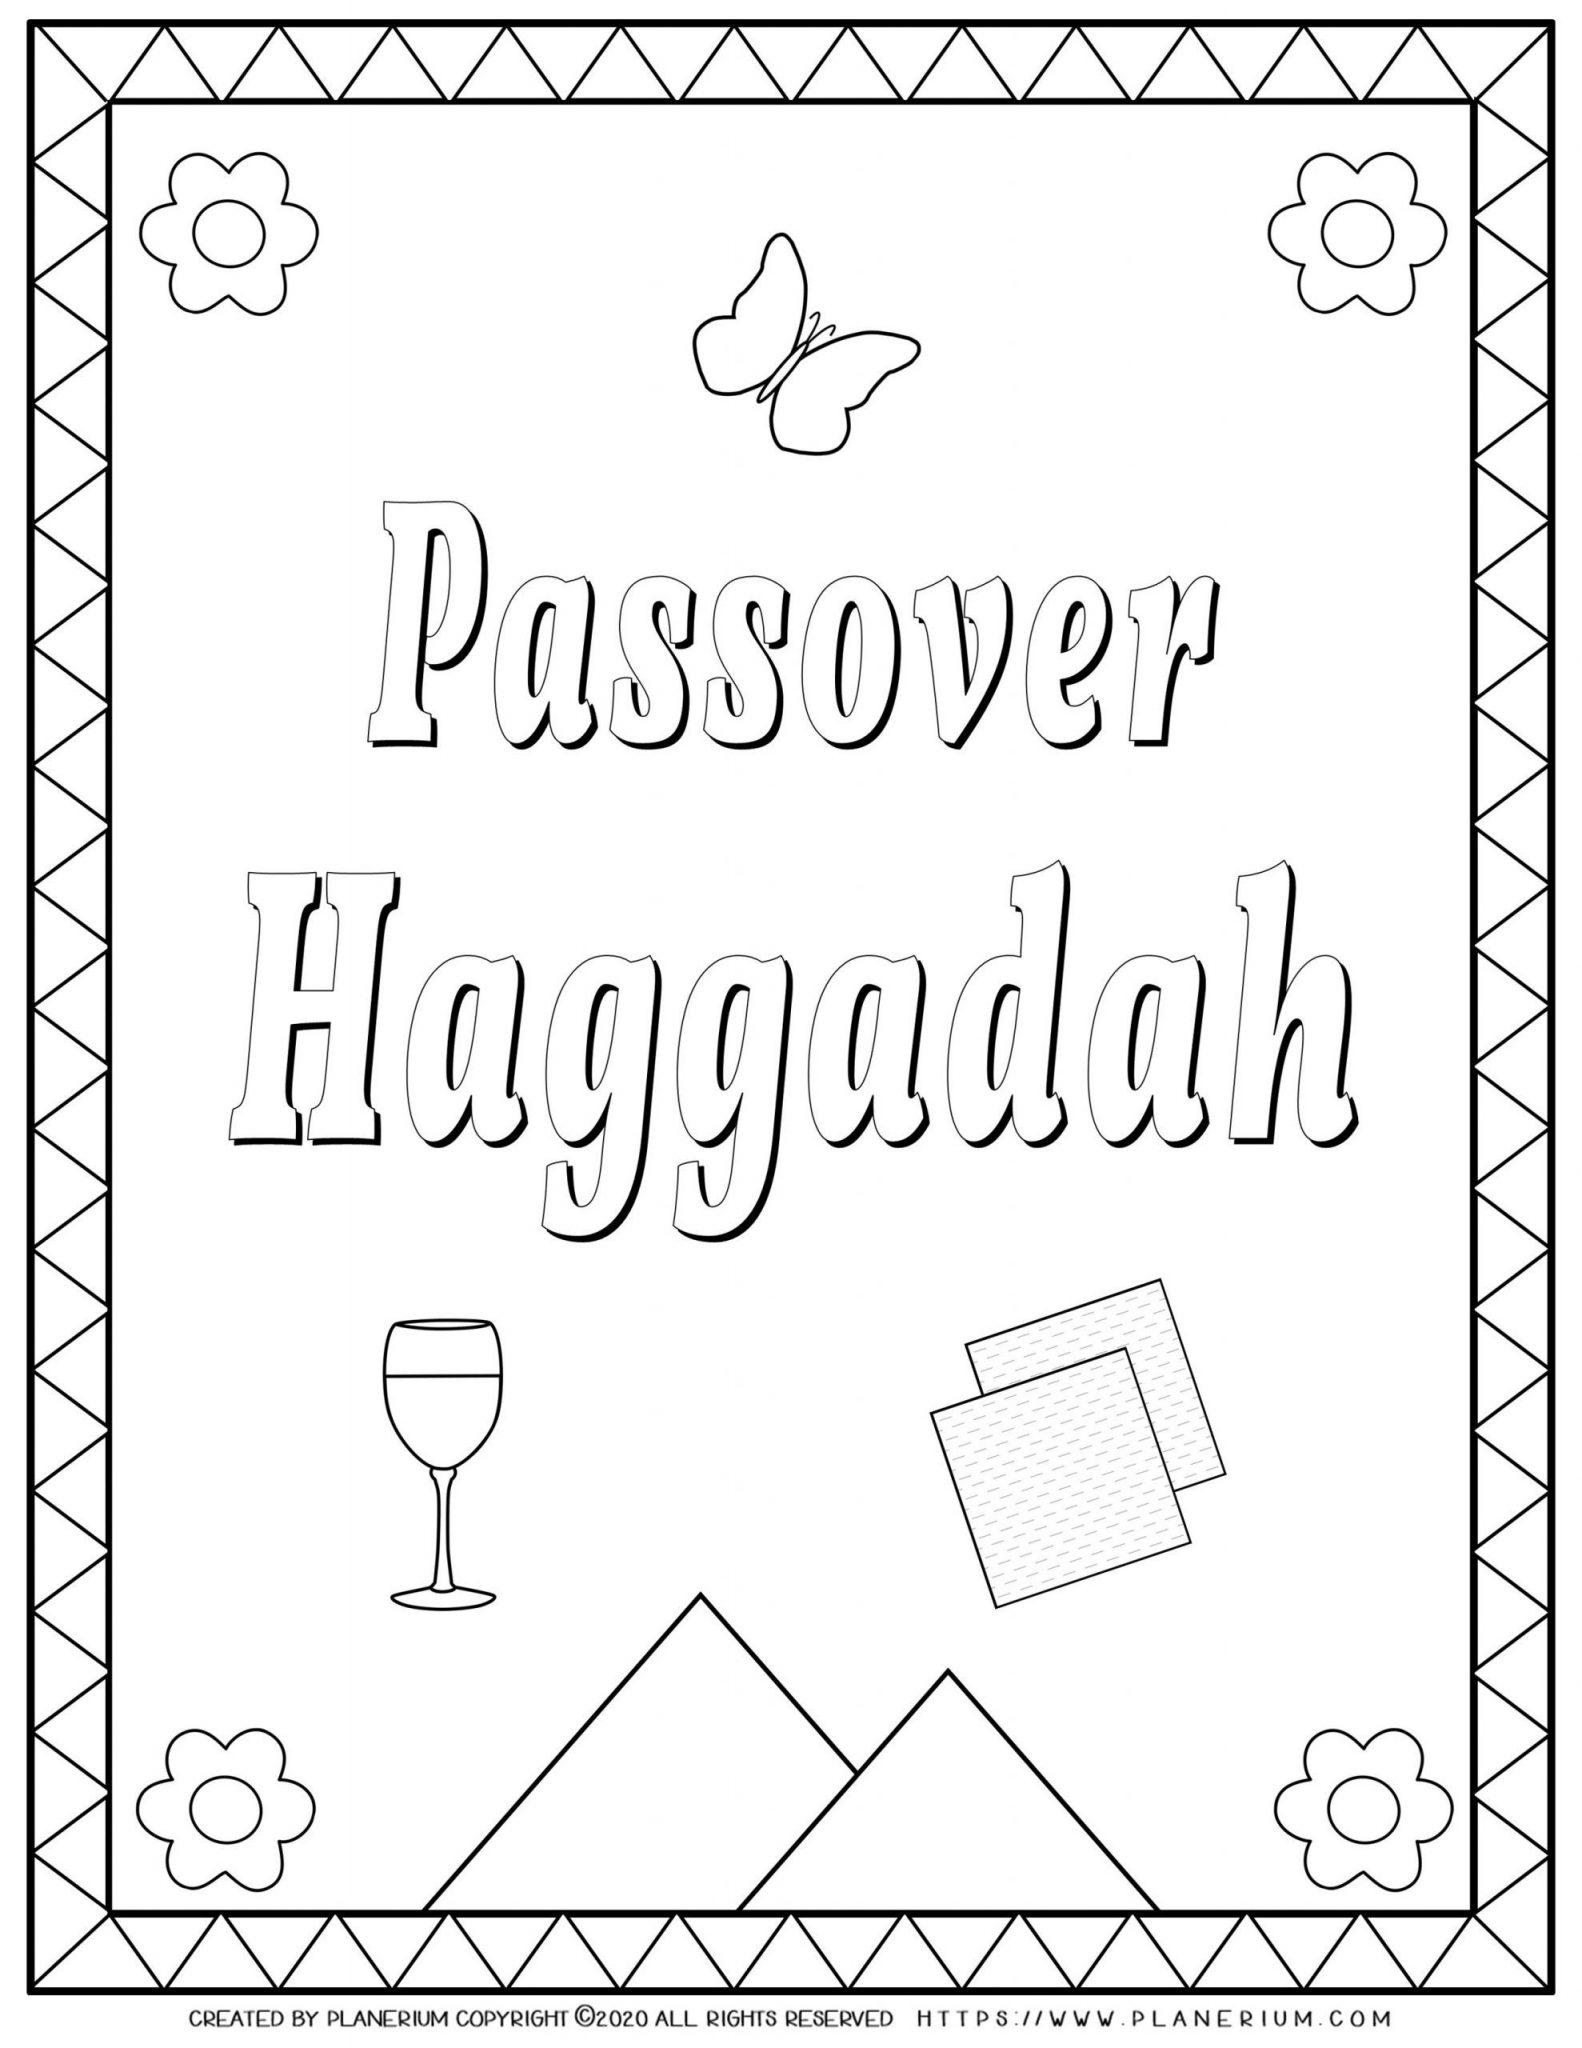 Passover coloring page - Haggadah book cover - English title